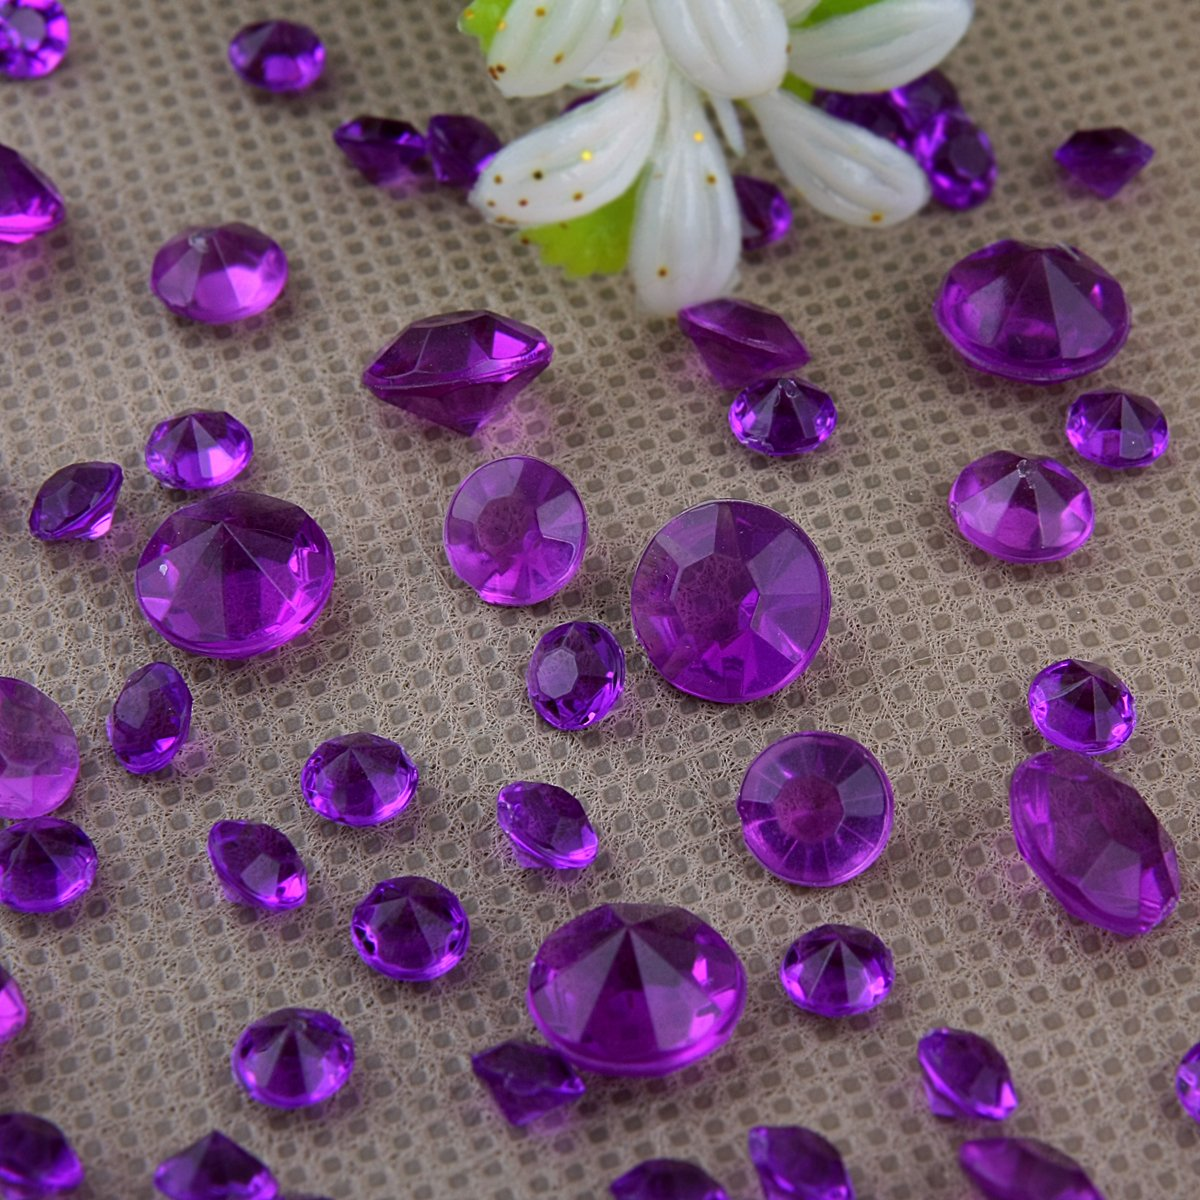 Purple table decorations amazon 5000 diamond scatter crystals confetti wedding table decoration 2 mixed sizes deep purple junglespirit Image collections